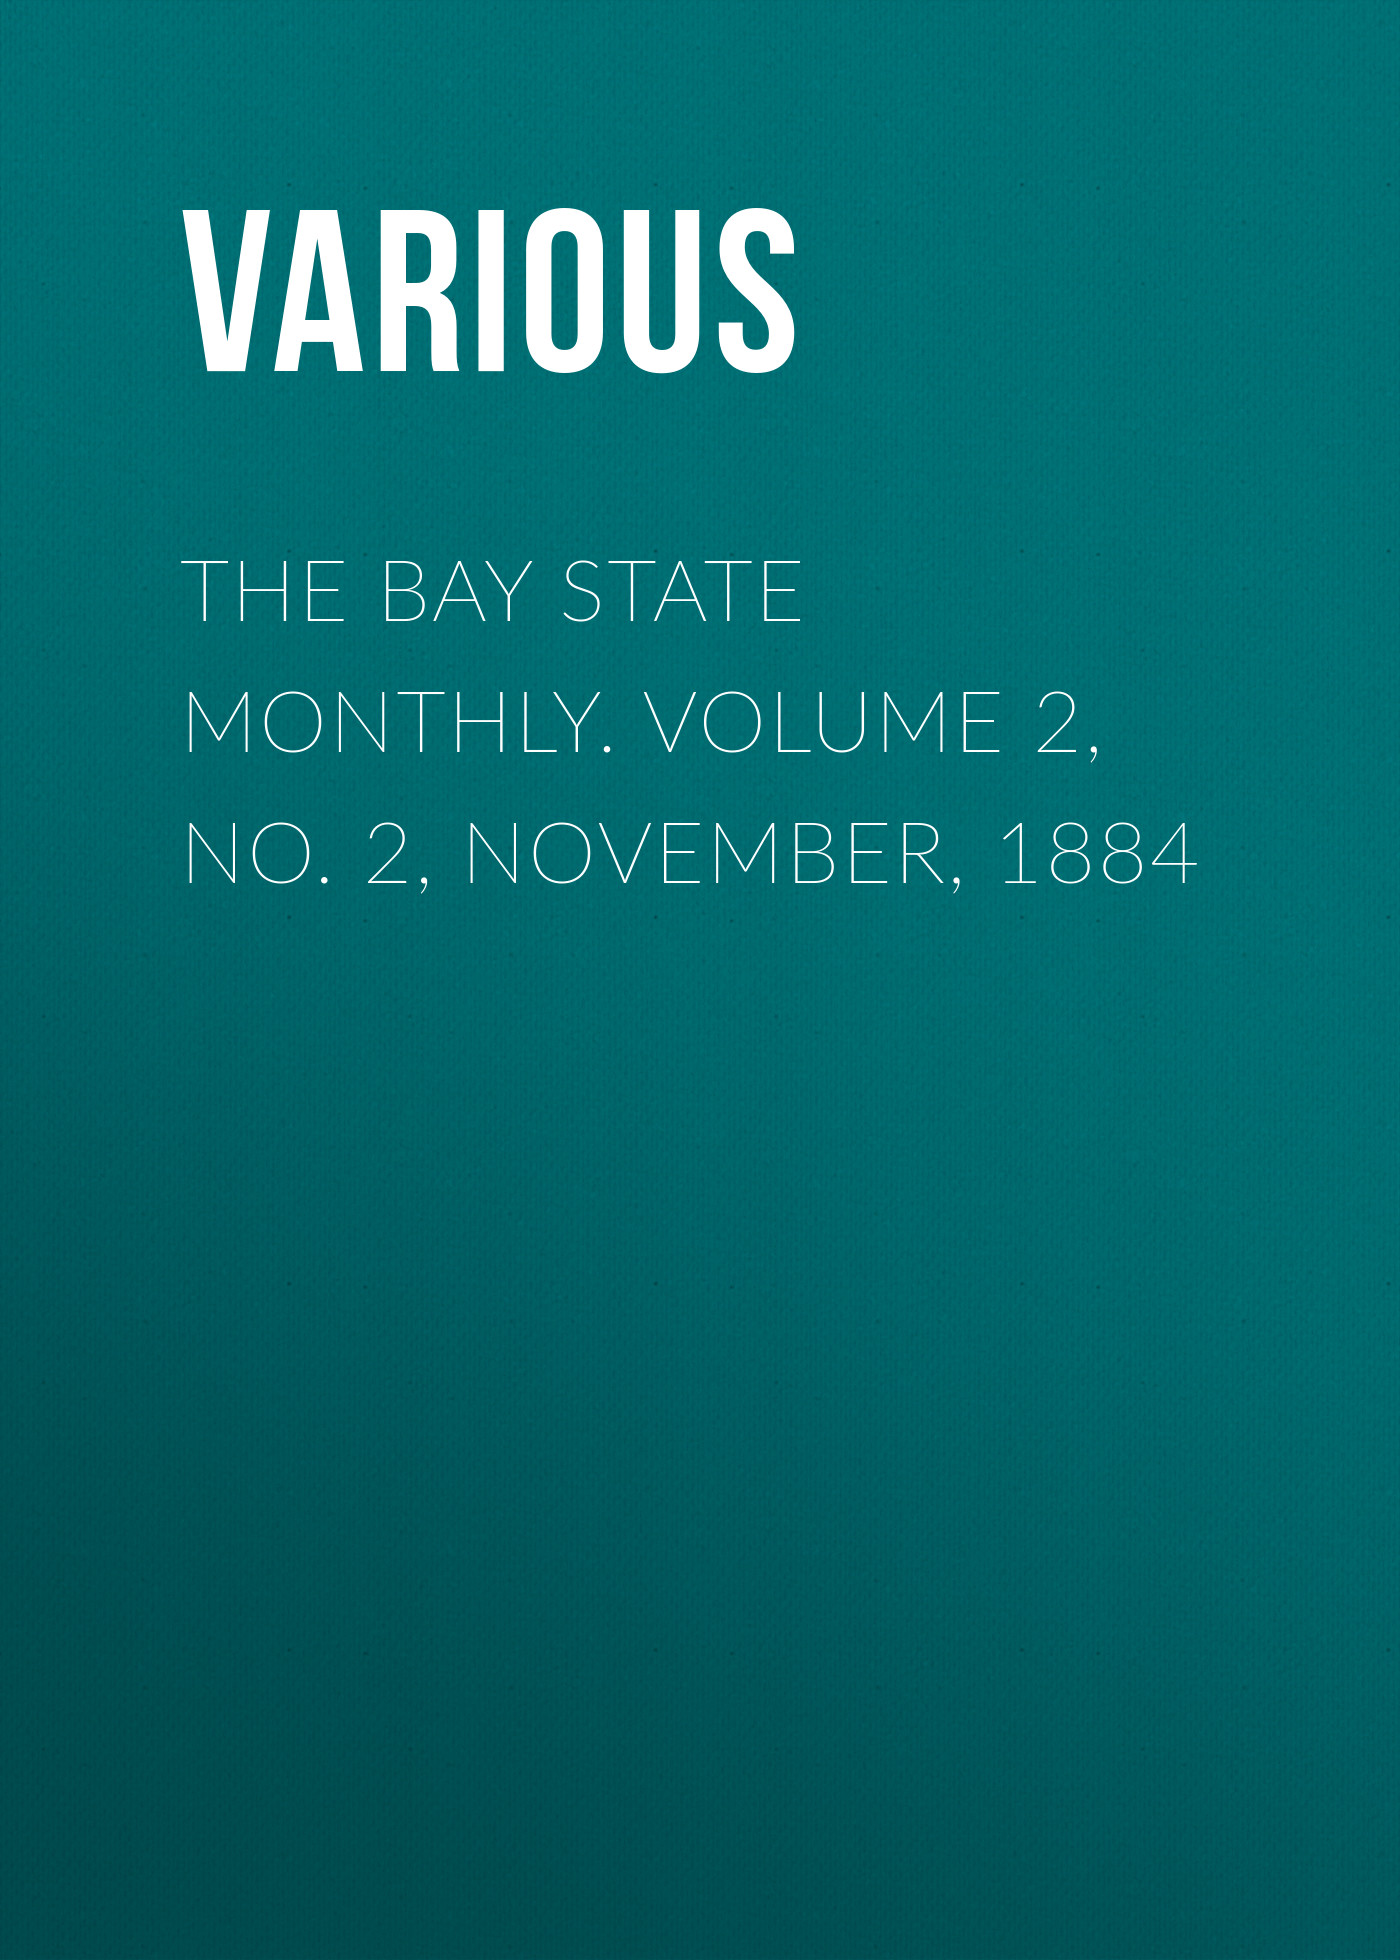 Various The Bay State Monthly. Volume 2, No. 2, November, 1884 the early november toronto